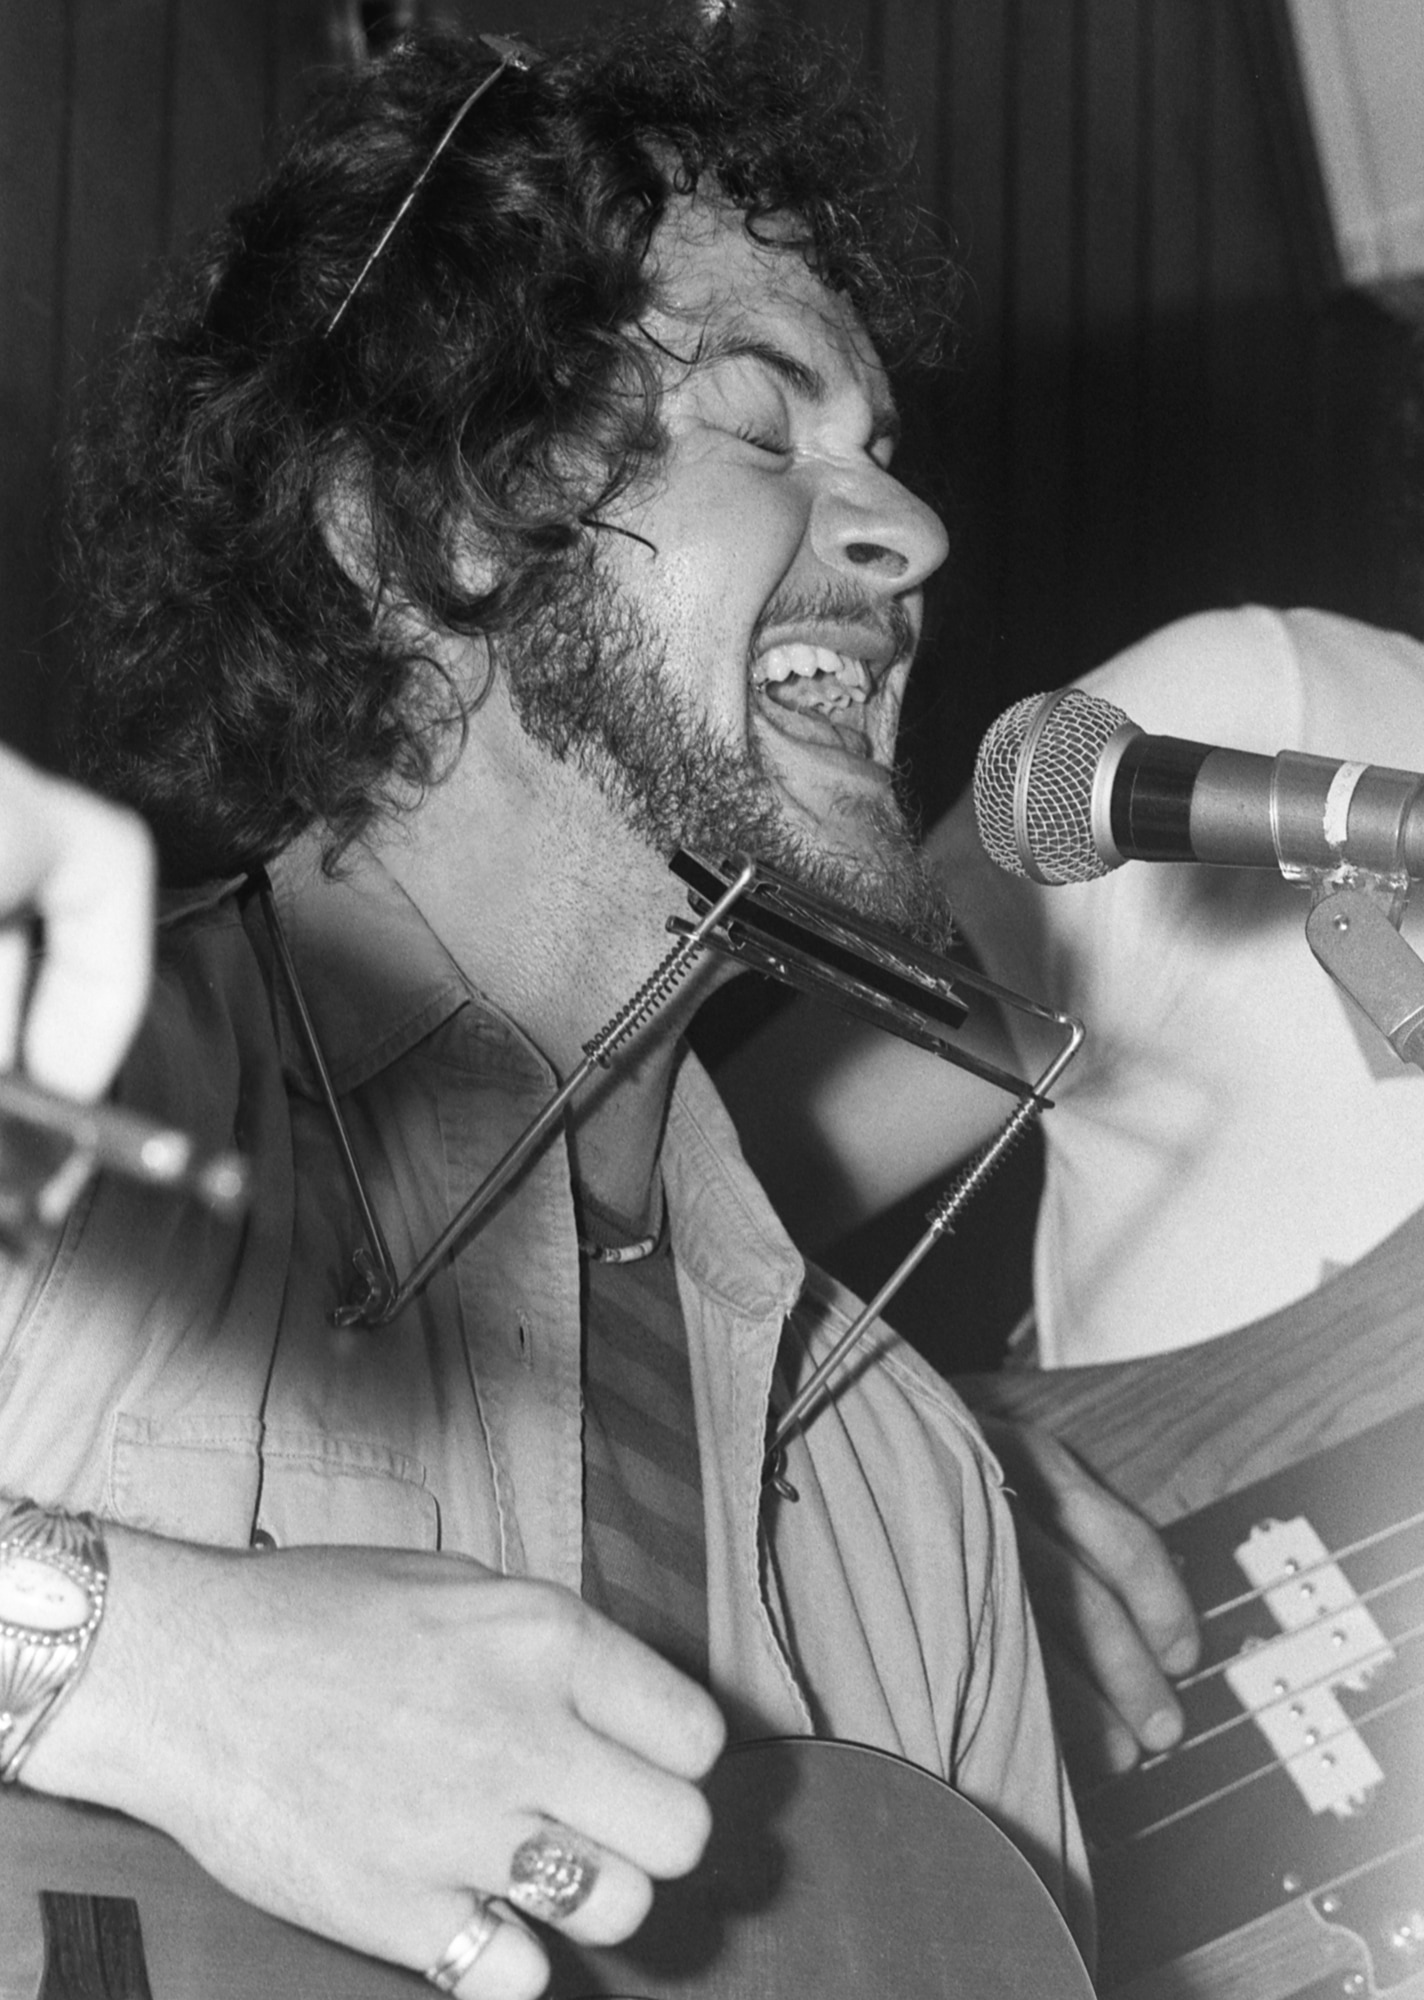 Man with curly hair and a scruffy beard sings into a microphone with his eyes closed and a harmonica around his neck.